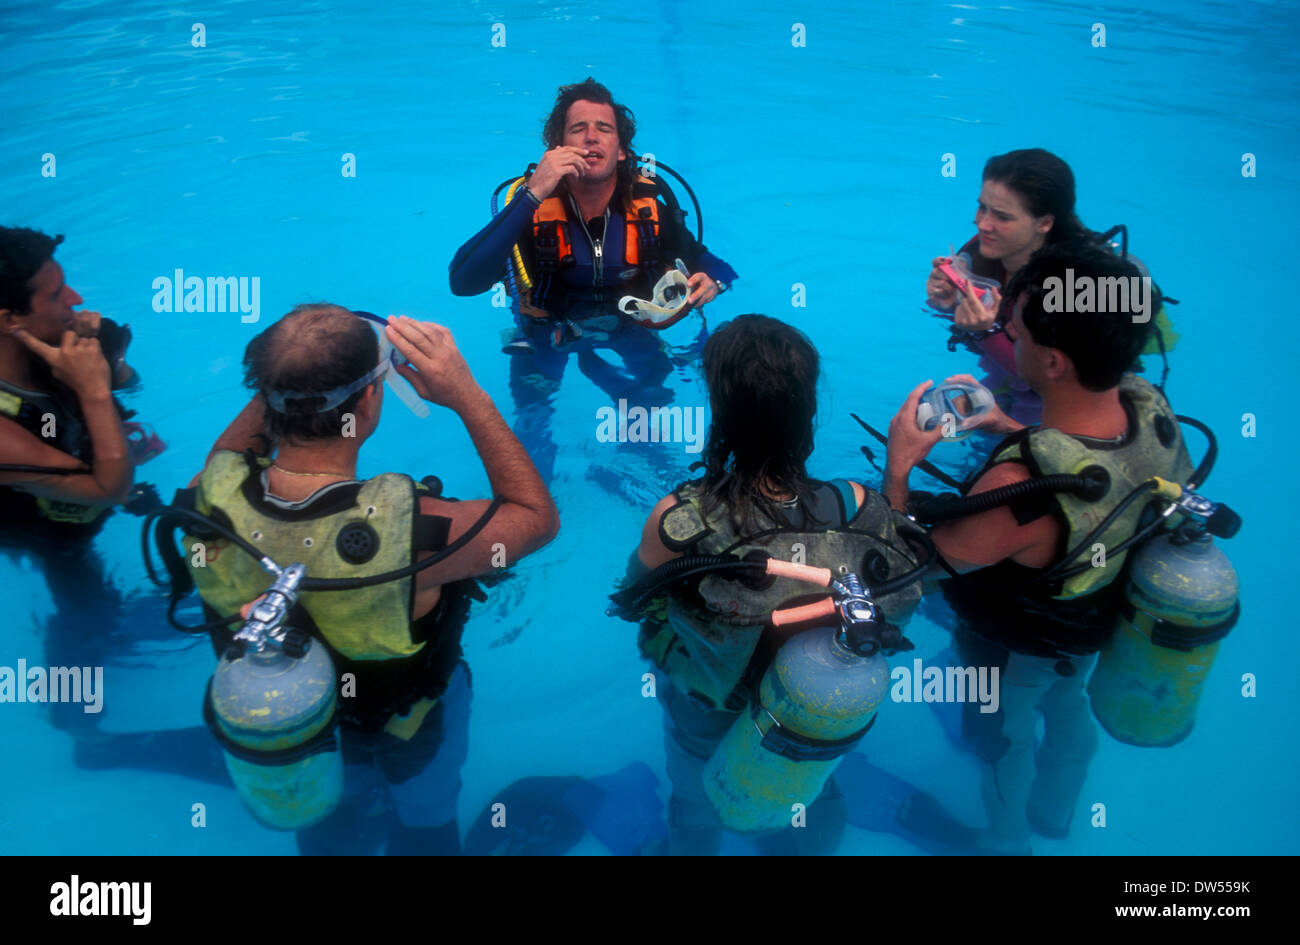 Dive lesson for tourists on holiday in the Indian Ocean - Stock Image